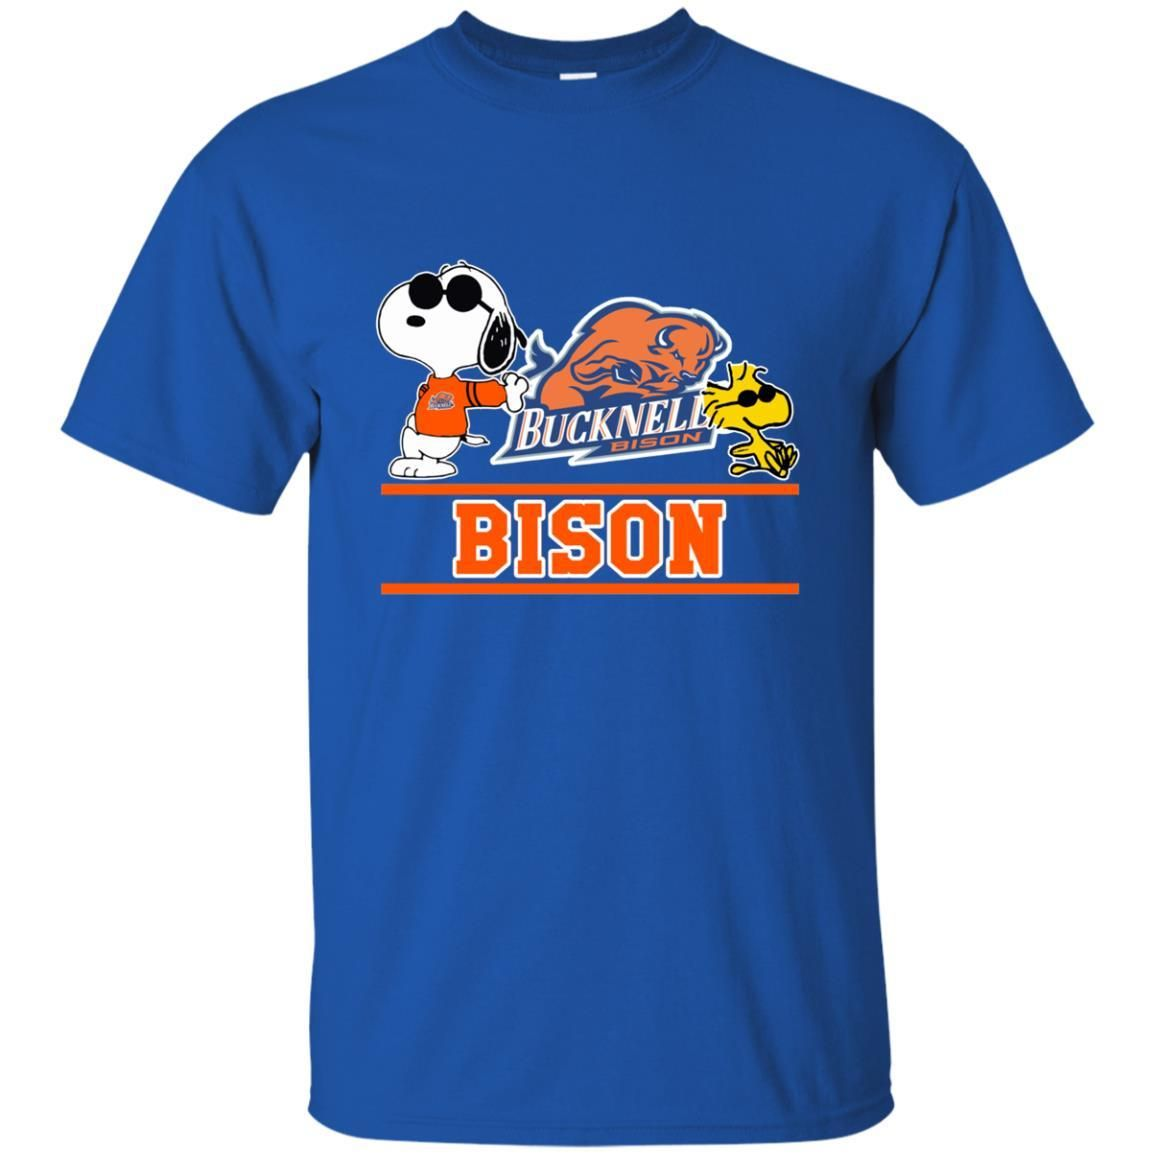 Amazing Christmas Gifts For Her: Bucknell Bison T Shirts Snoopy Hoodies Sweatshirts